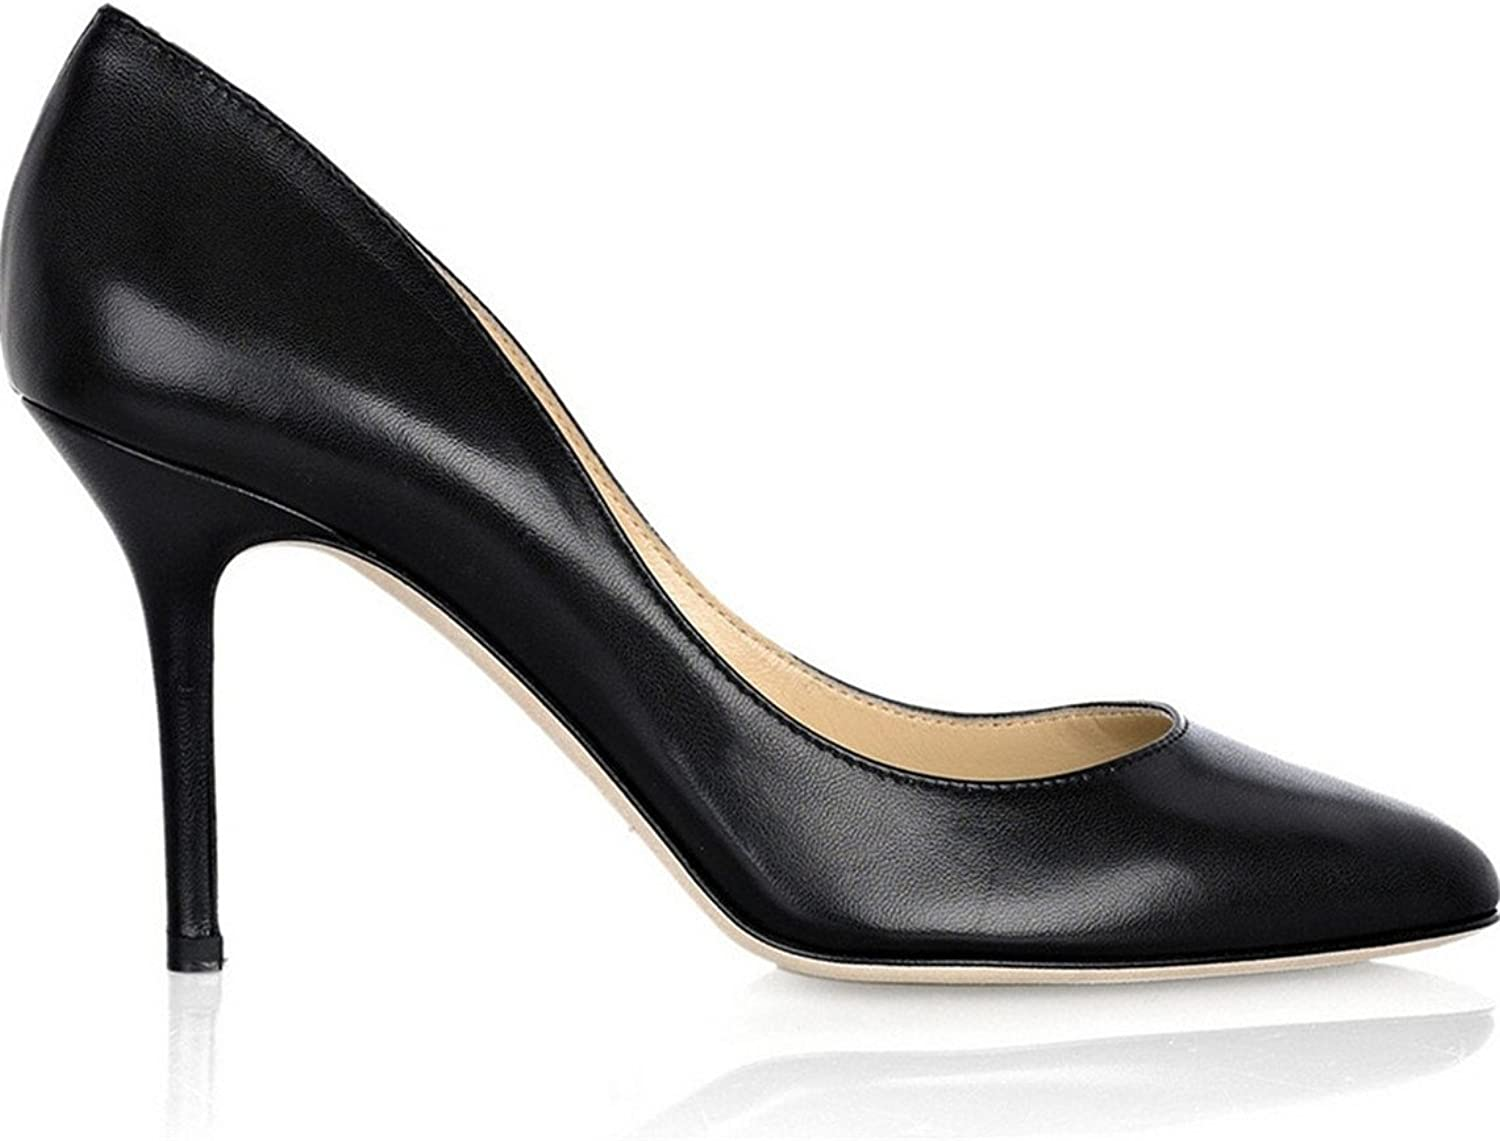 shoesmaker's heart Europe and America Sexy High-Heeled shoes Black Small Round Head Fine Heel shoes